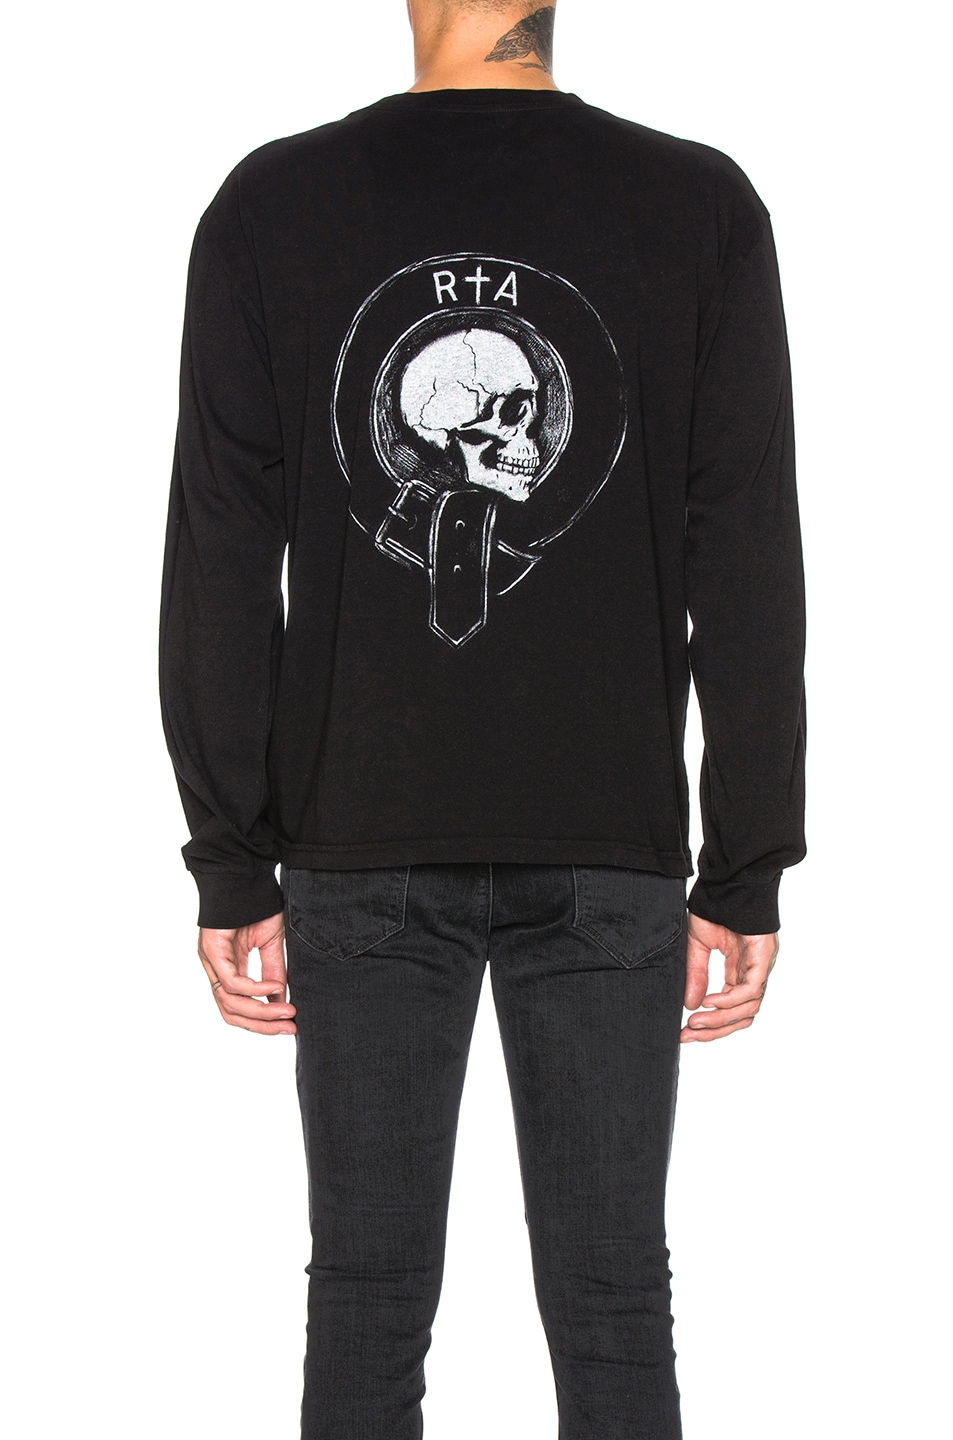 Image 4 of RtA Long Sleeve Graphic Tee in Black Crest